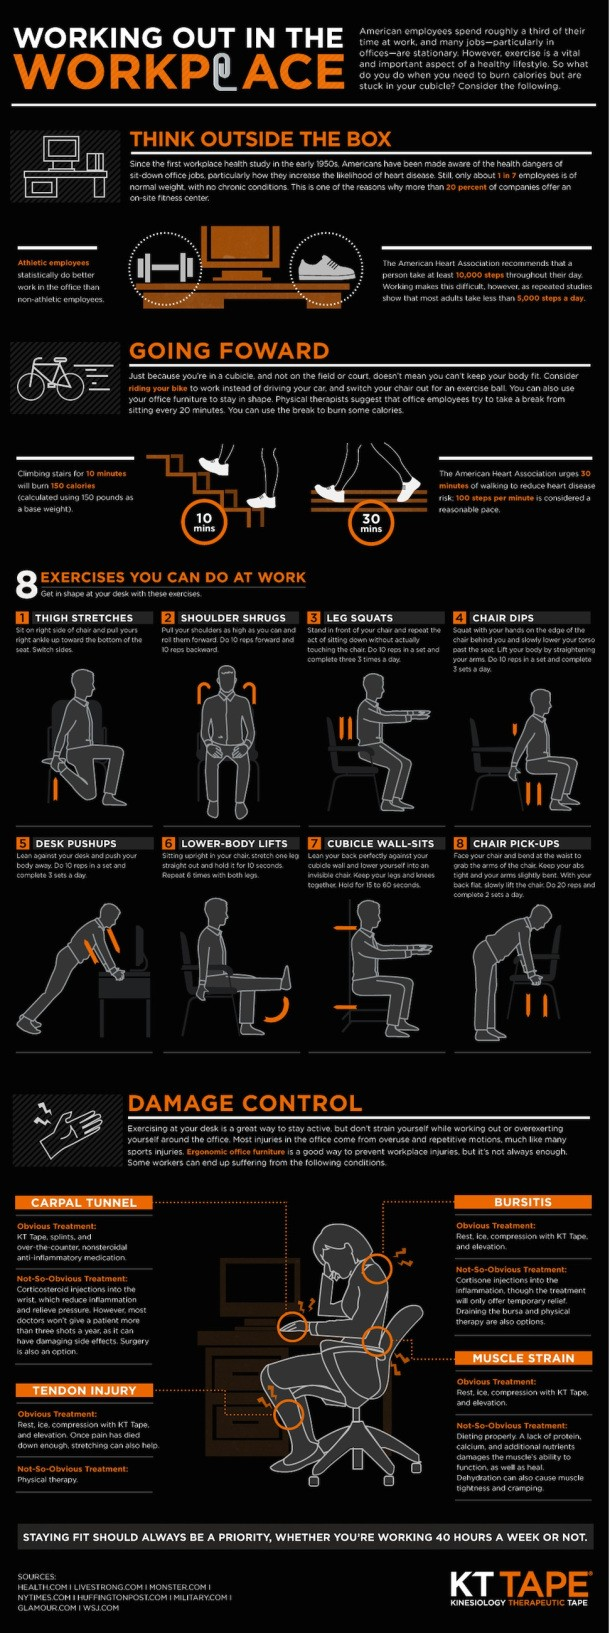 Workplace Infographic: Working Out In The Workplace - ComplianceandSafety.com